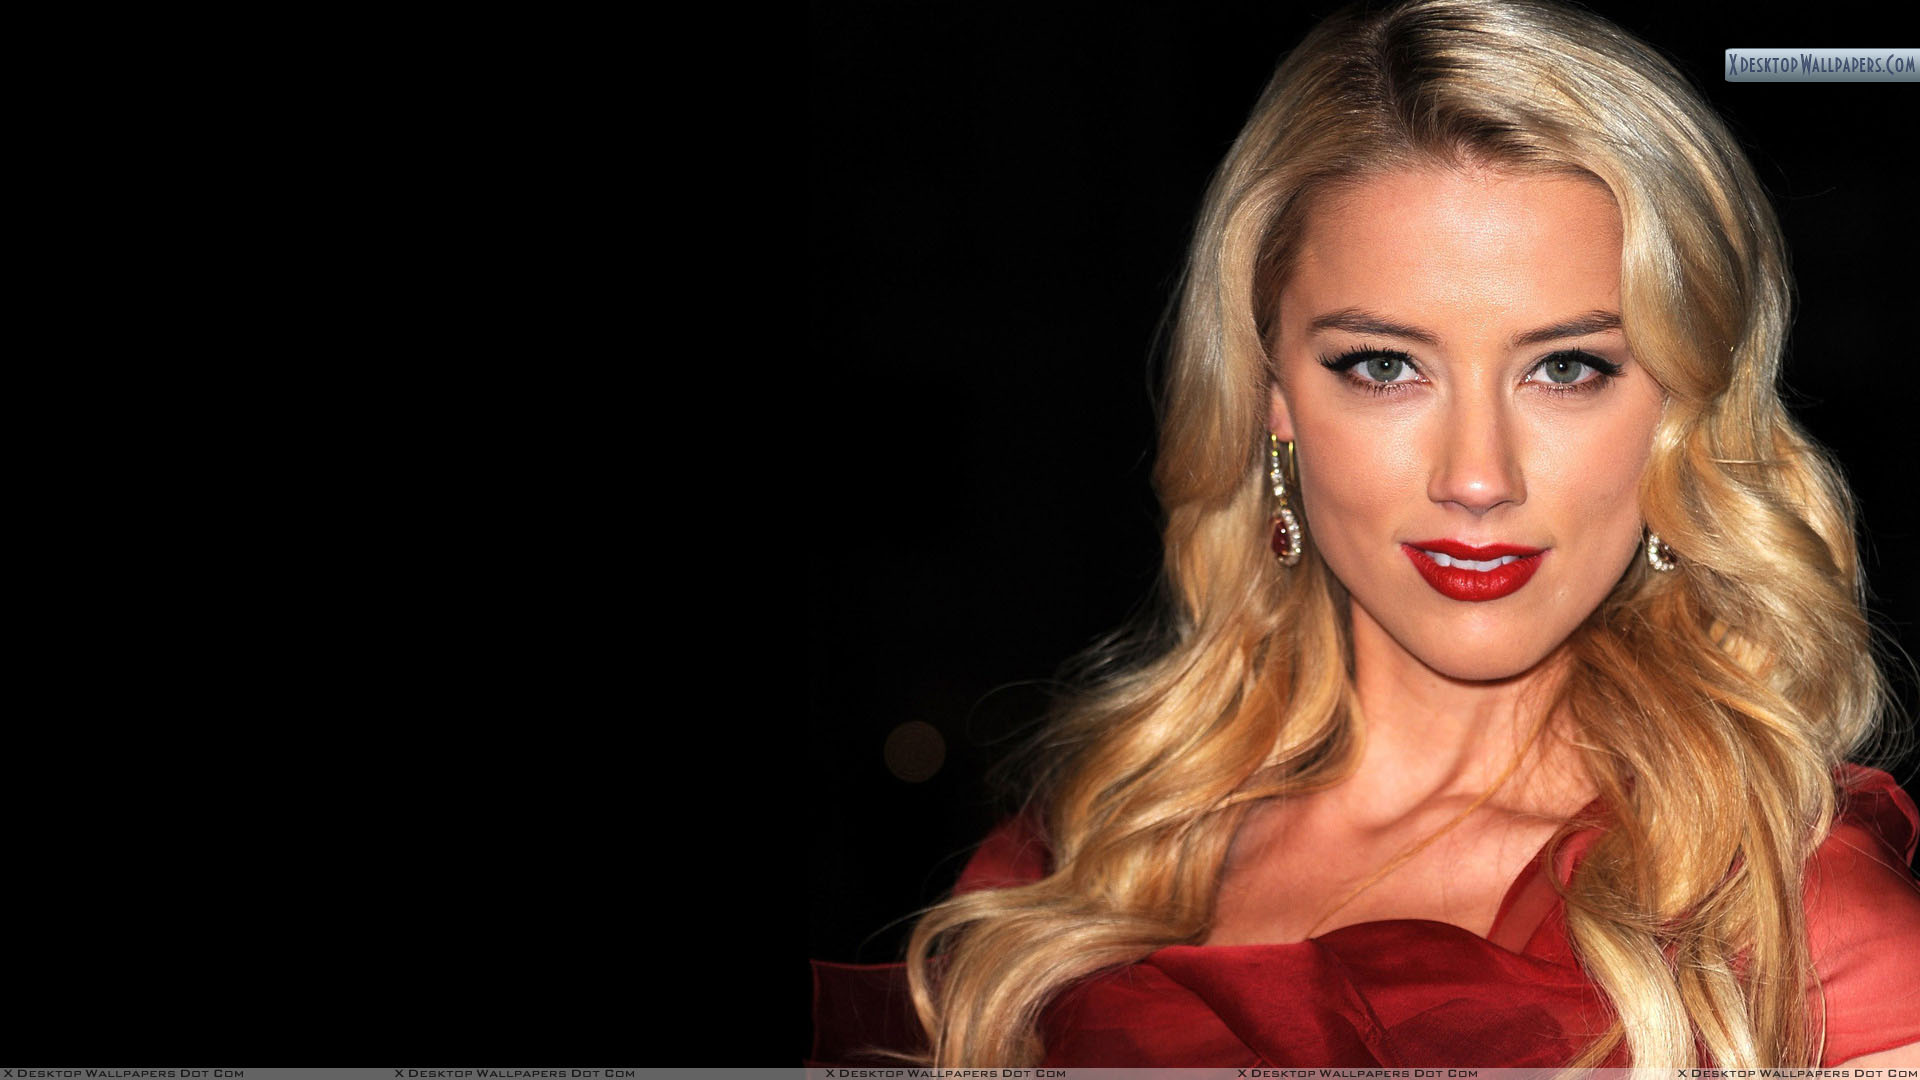 Amber Heard Smiling In Red Lips And Black Background Wallpaper 1920x1080